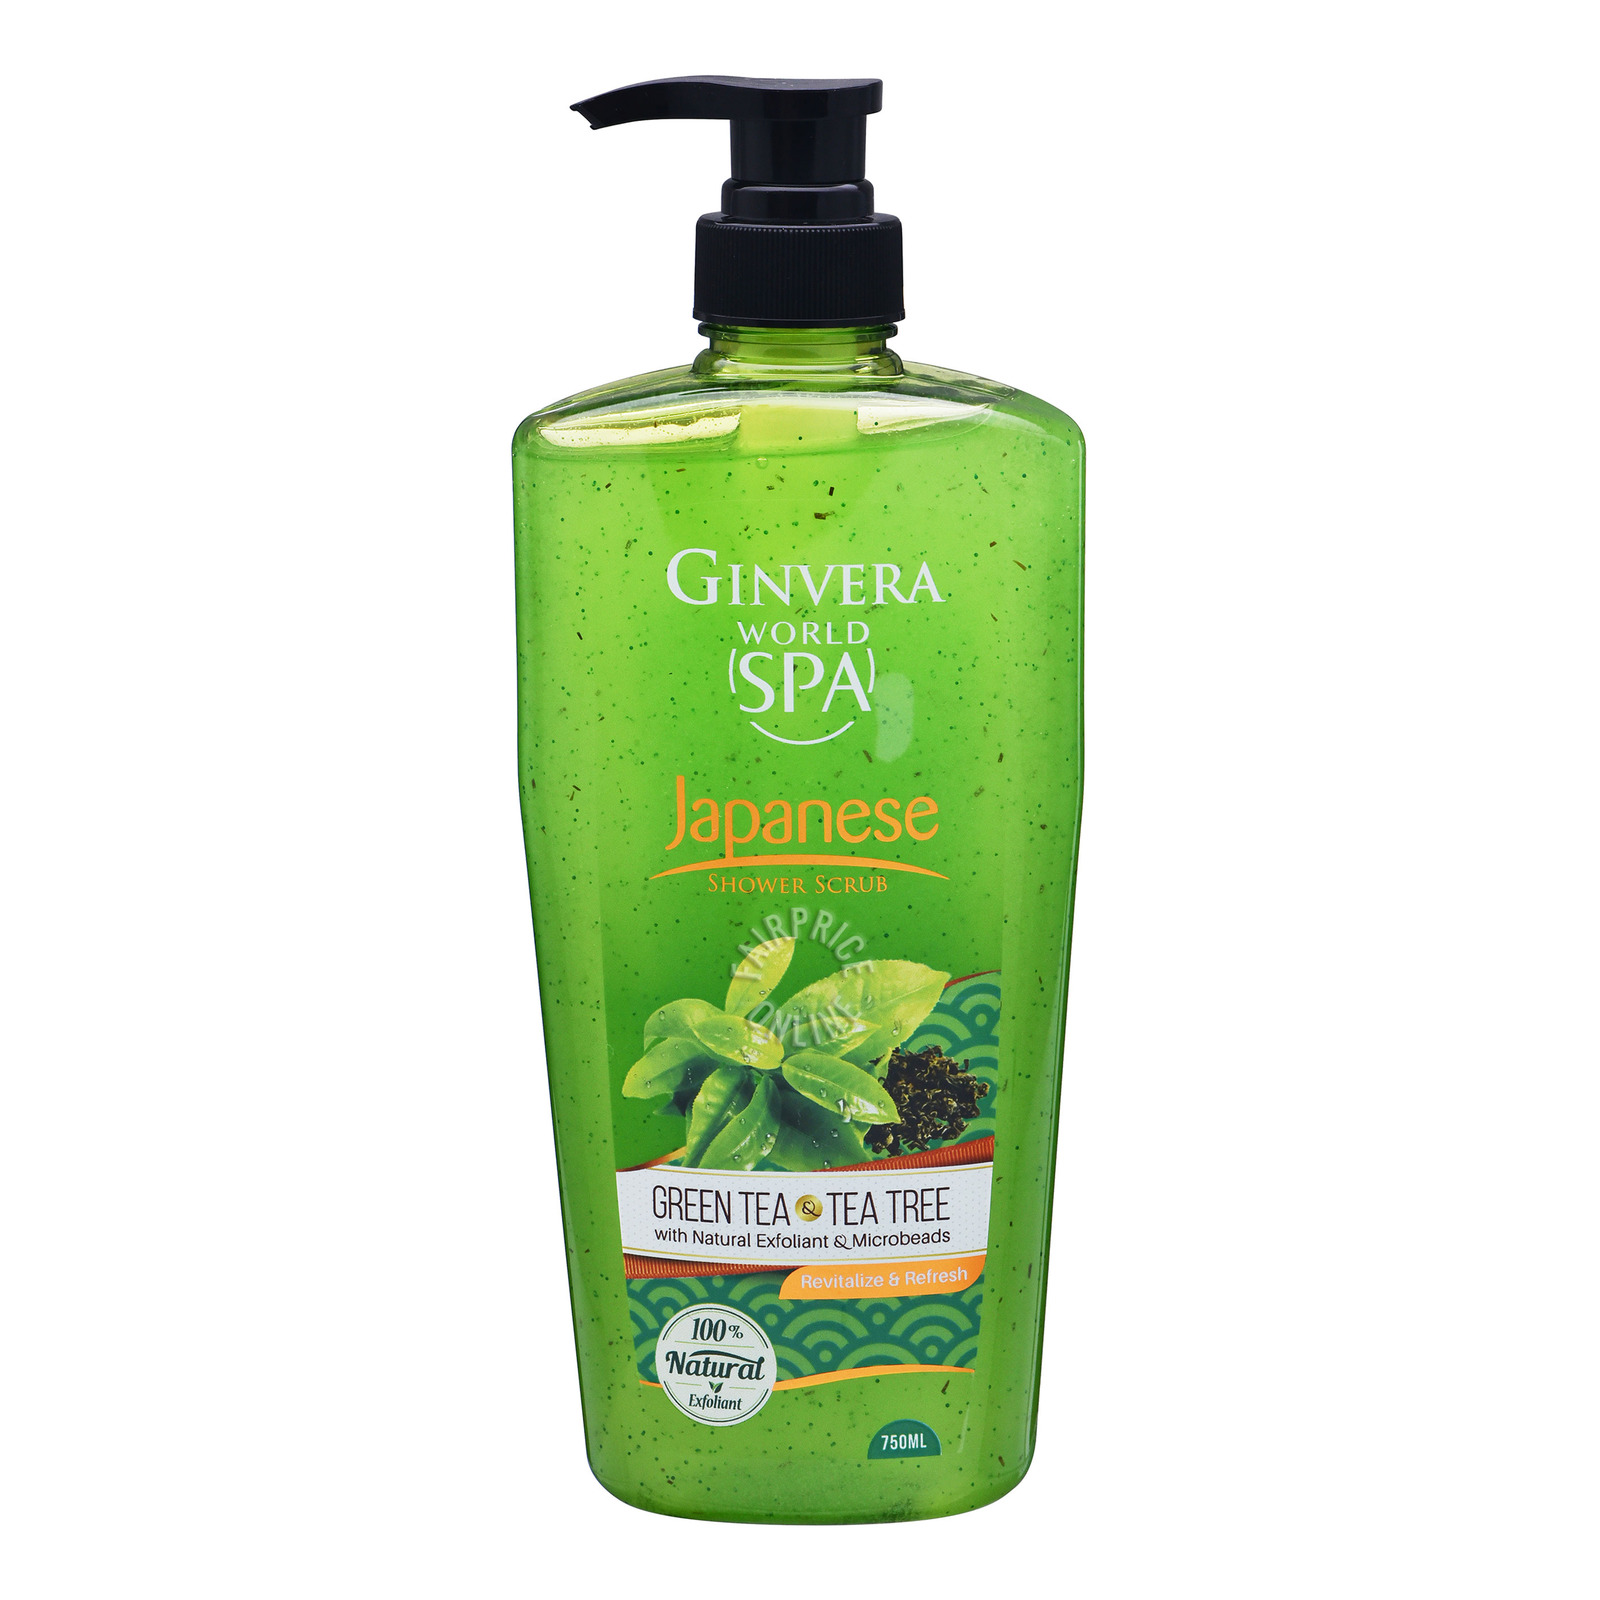 Ginvera World Spa Shower Scrub - Japanese (Green Tea & TeaTree)